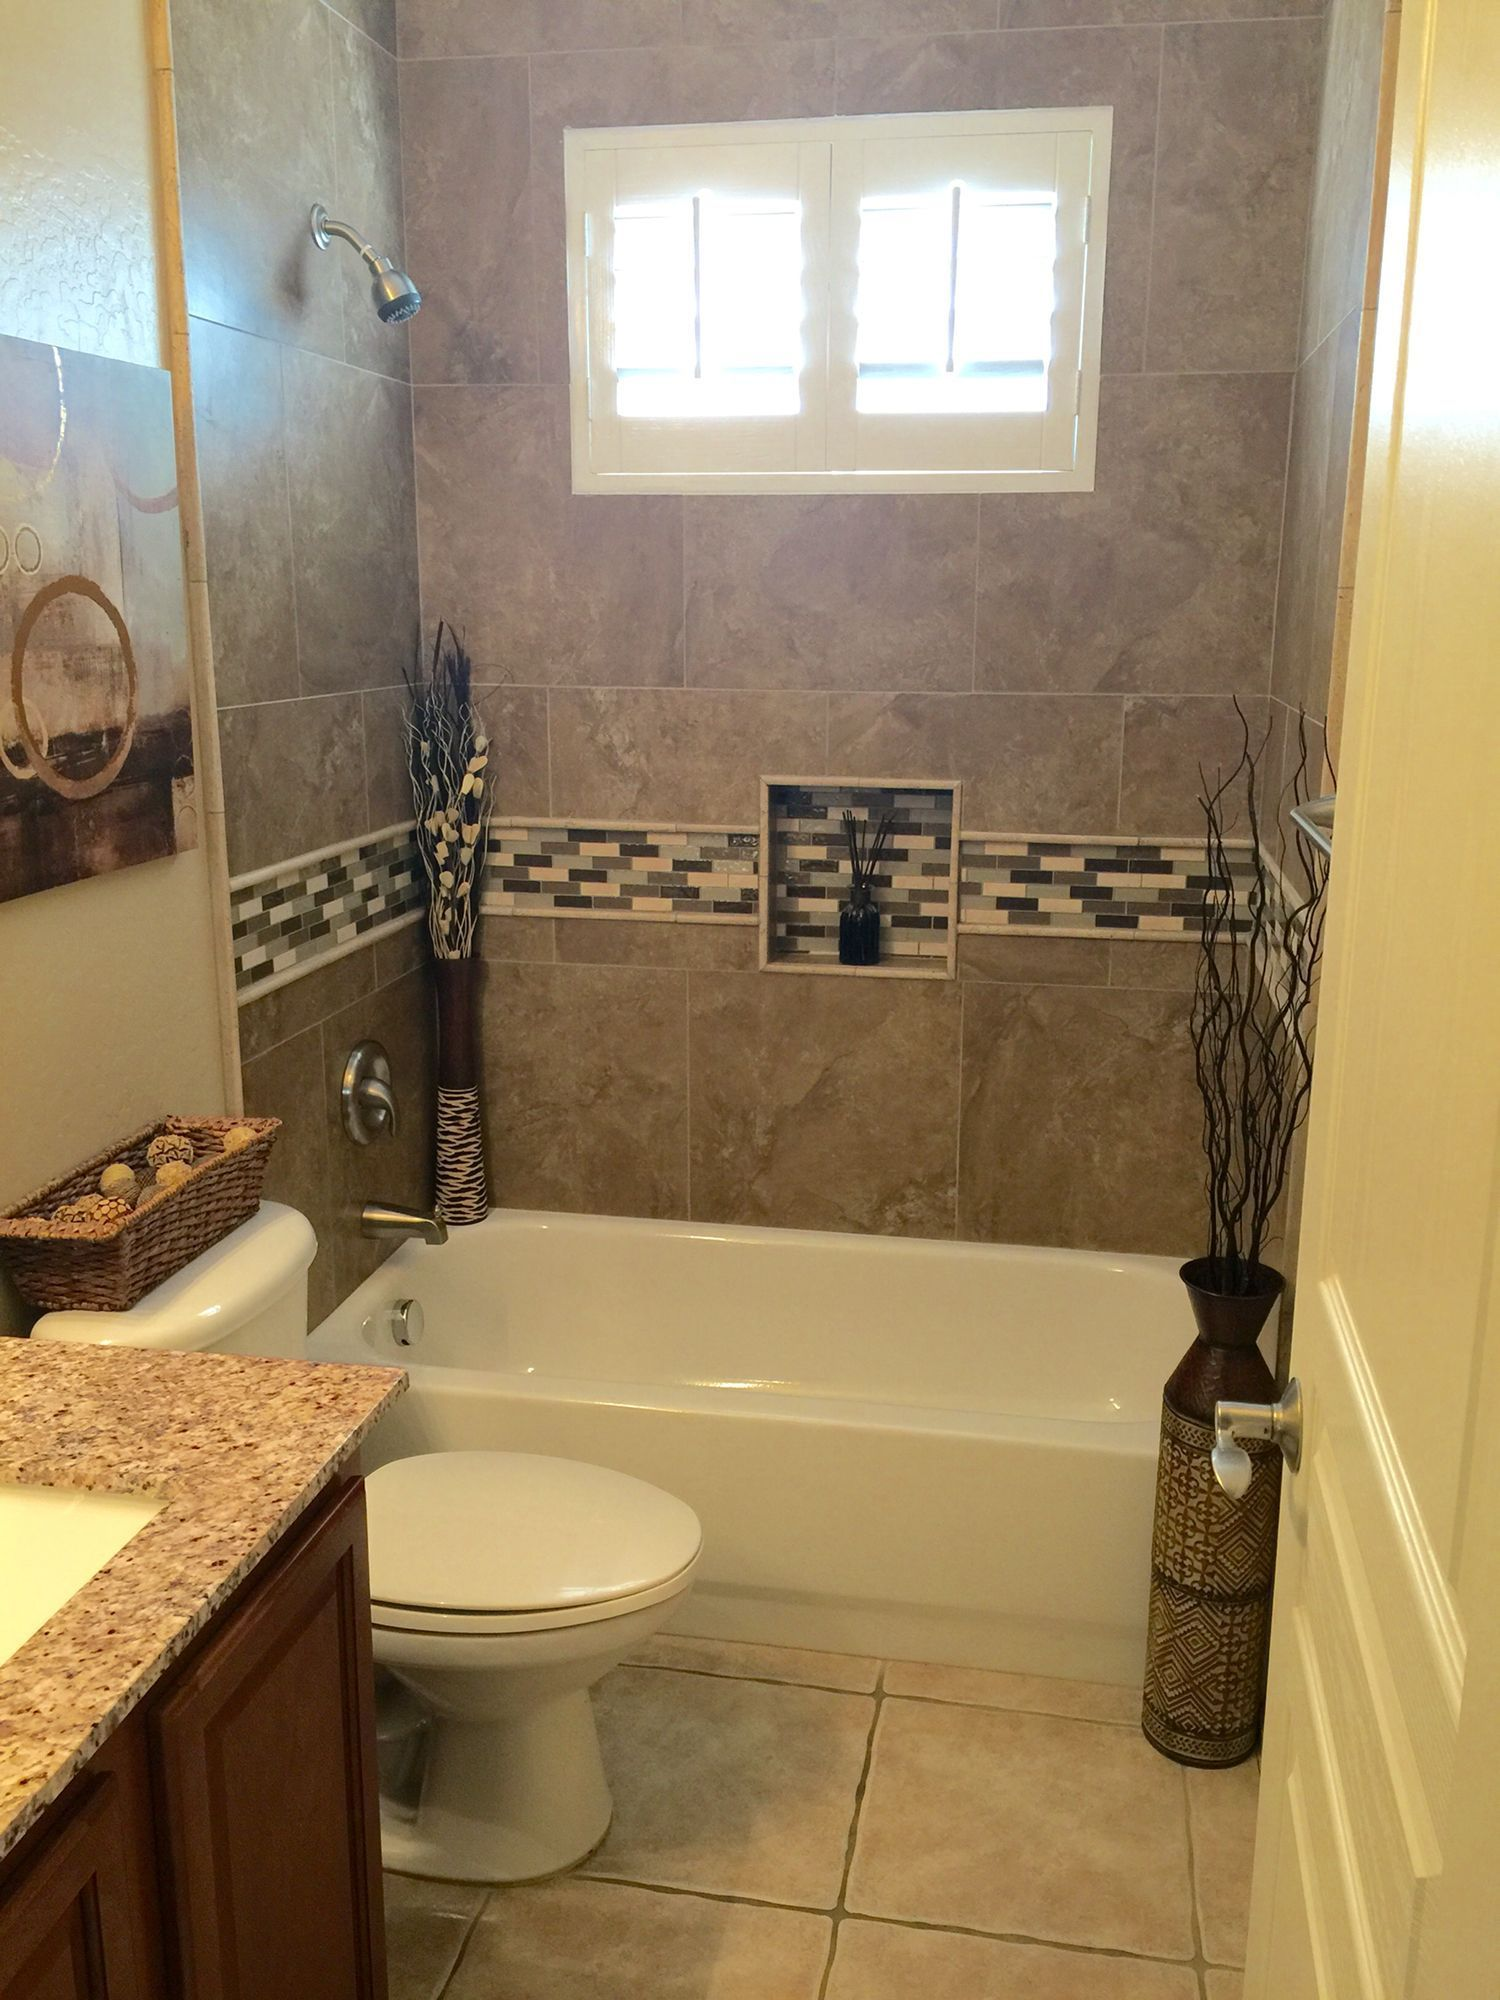 9 Secret Advice To Make An Outstanding Home Bathroom Remodel Diy Bathroom Remodel Small Bathroom Remodel Bathtub Remodel